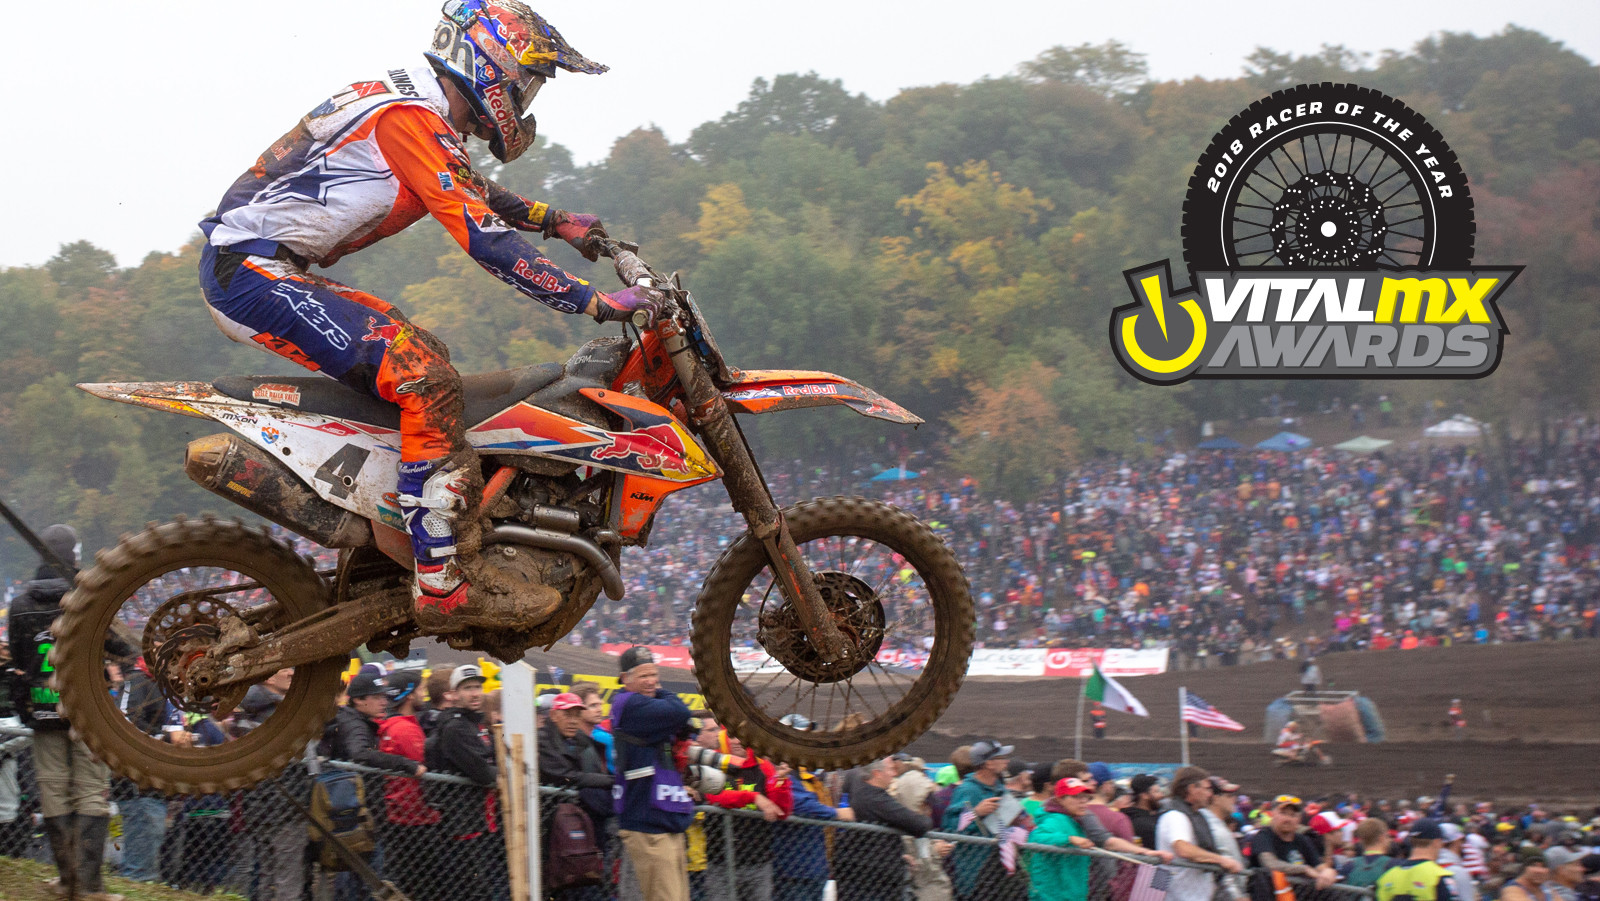 Vital MX Awards Show, Part 3: Racer of the Year